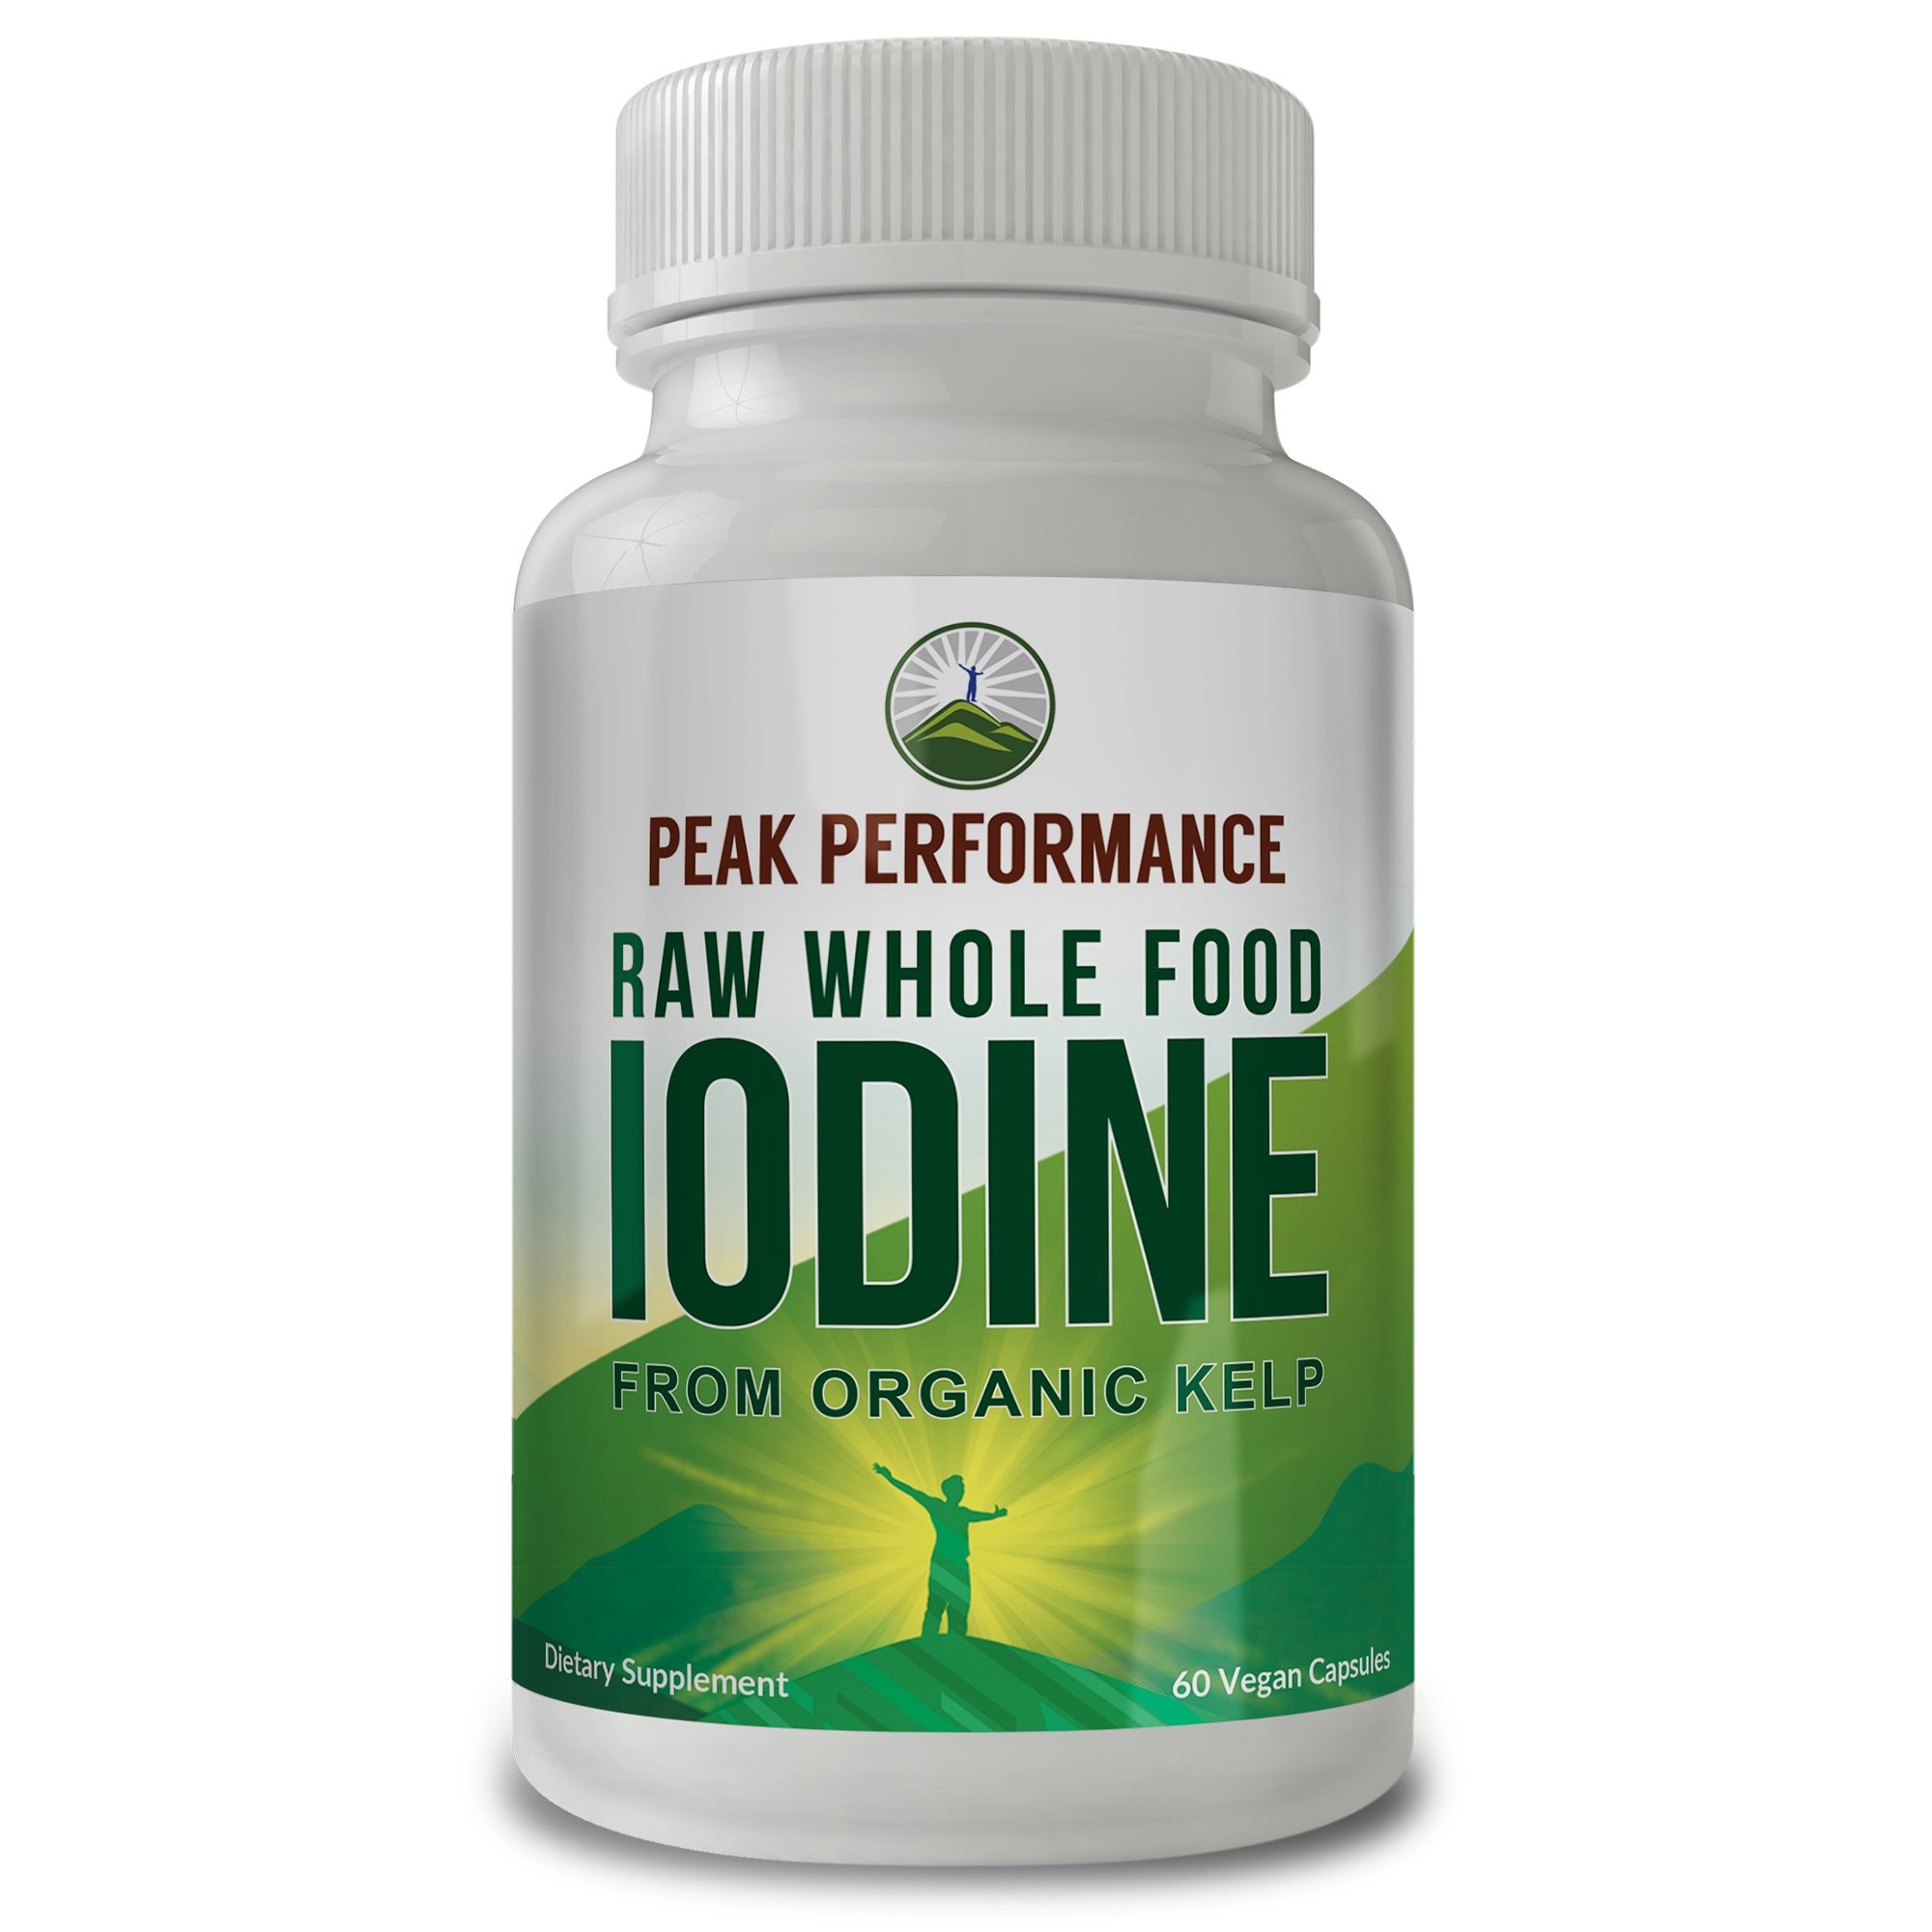 Raw Whole Food Iodine From Organic Kelp (Ascophyllum Nodosum) By Peak Performance. Thyroid Support Supplement. Great For Metabolism, Energy and Immune Boost - 60 Vegan Capsules